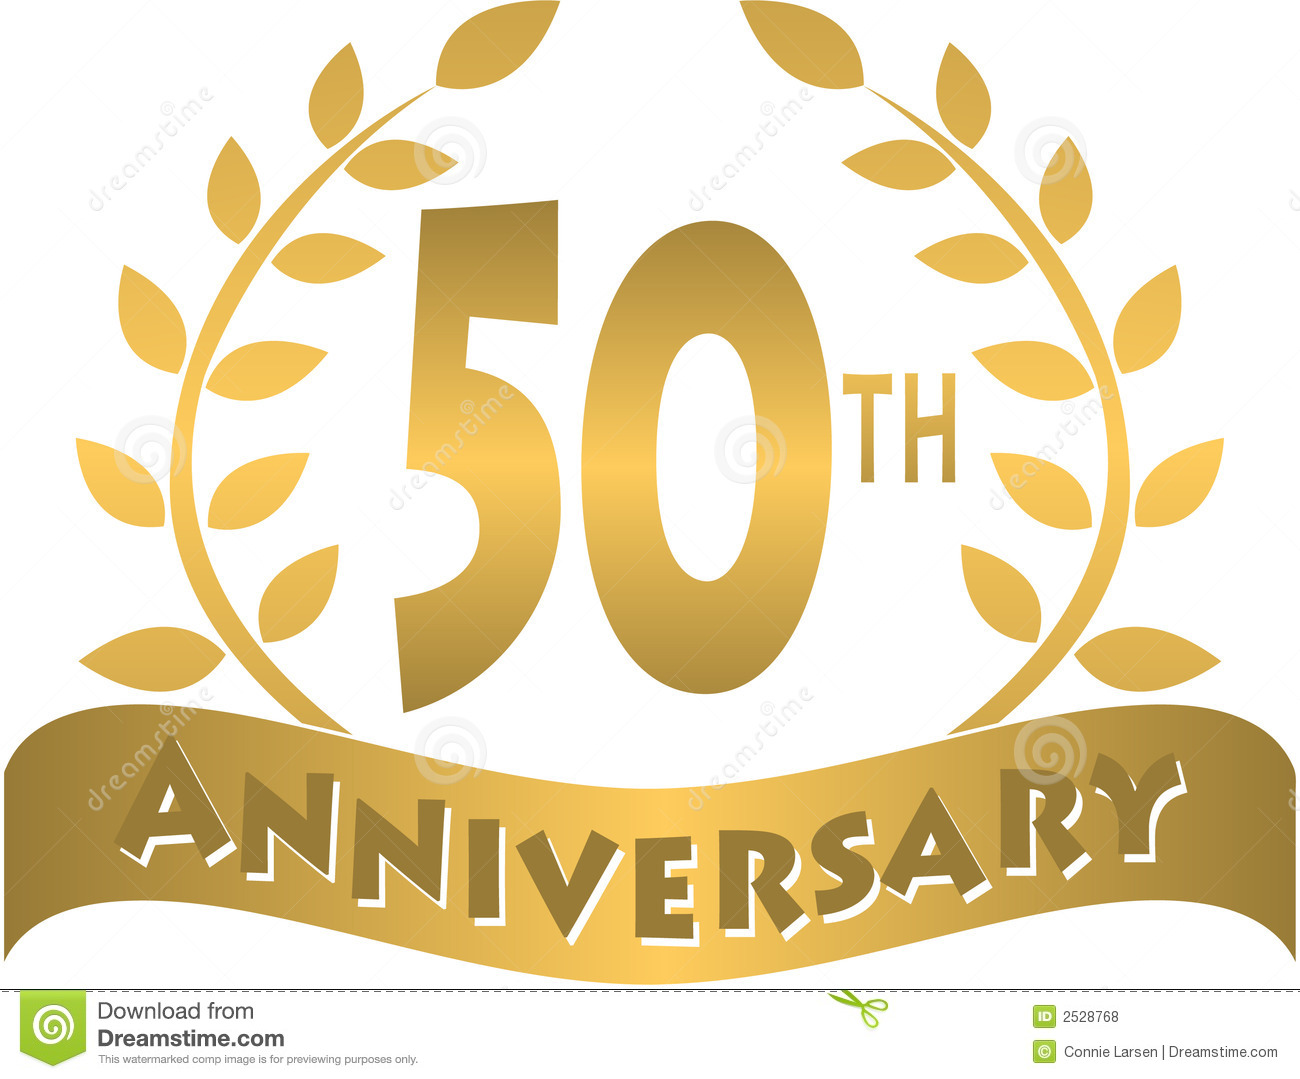 png hd 50th wedding anniversary transparent hd 50th wedding